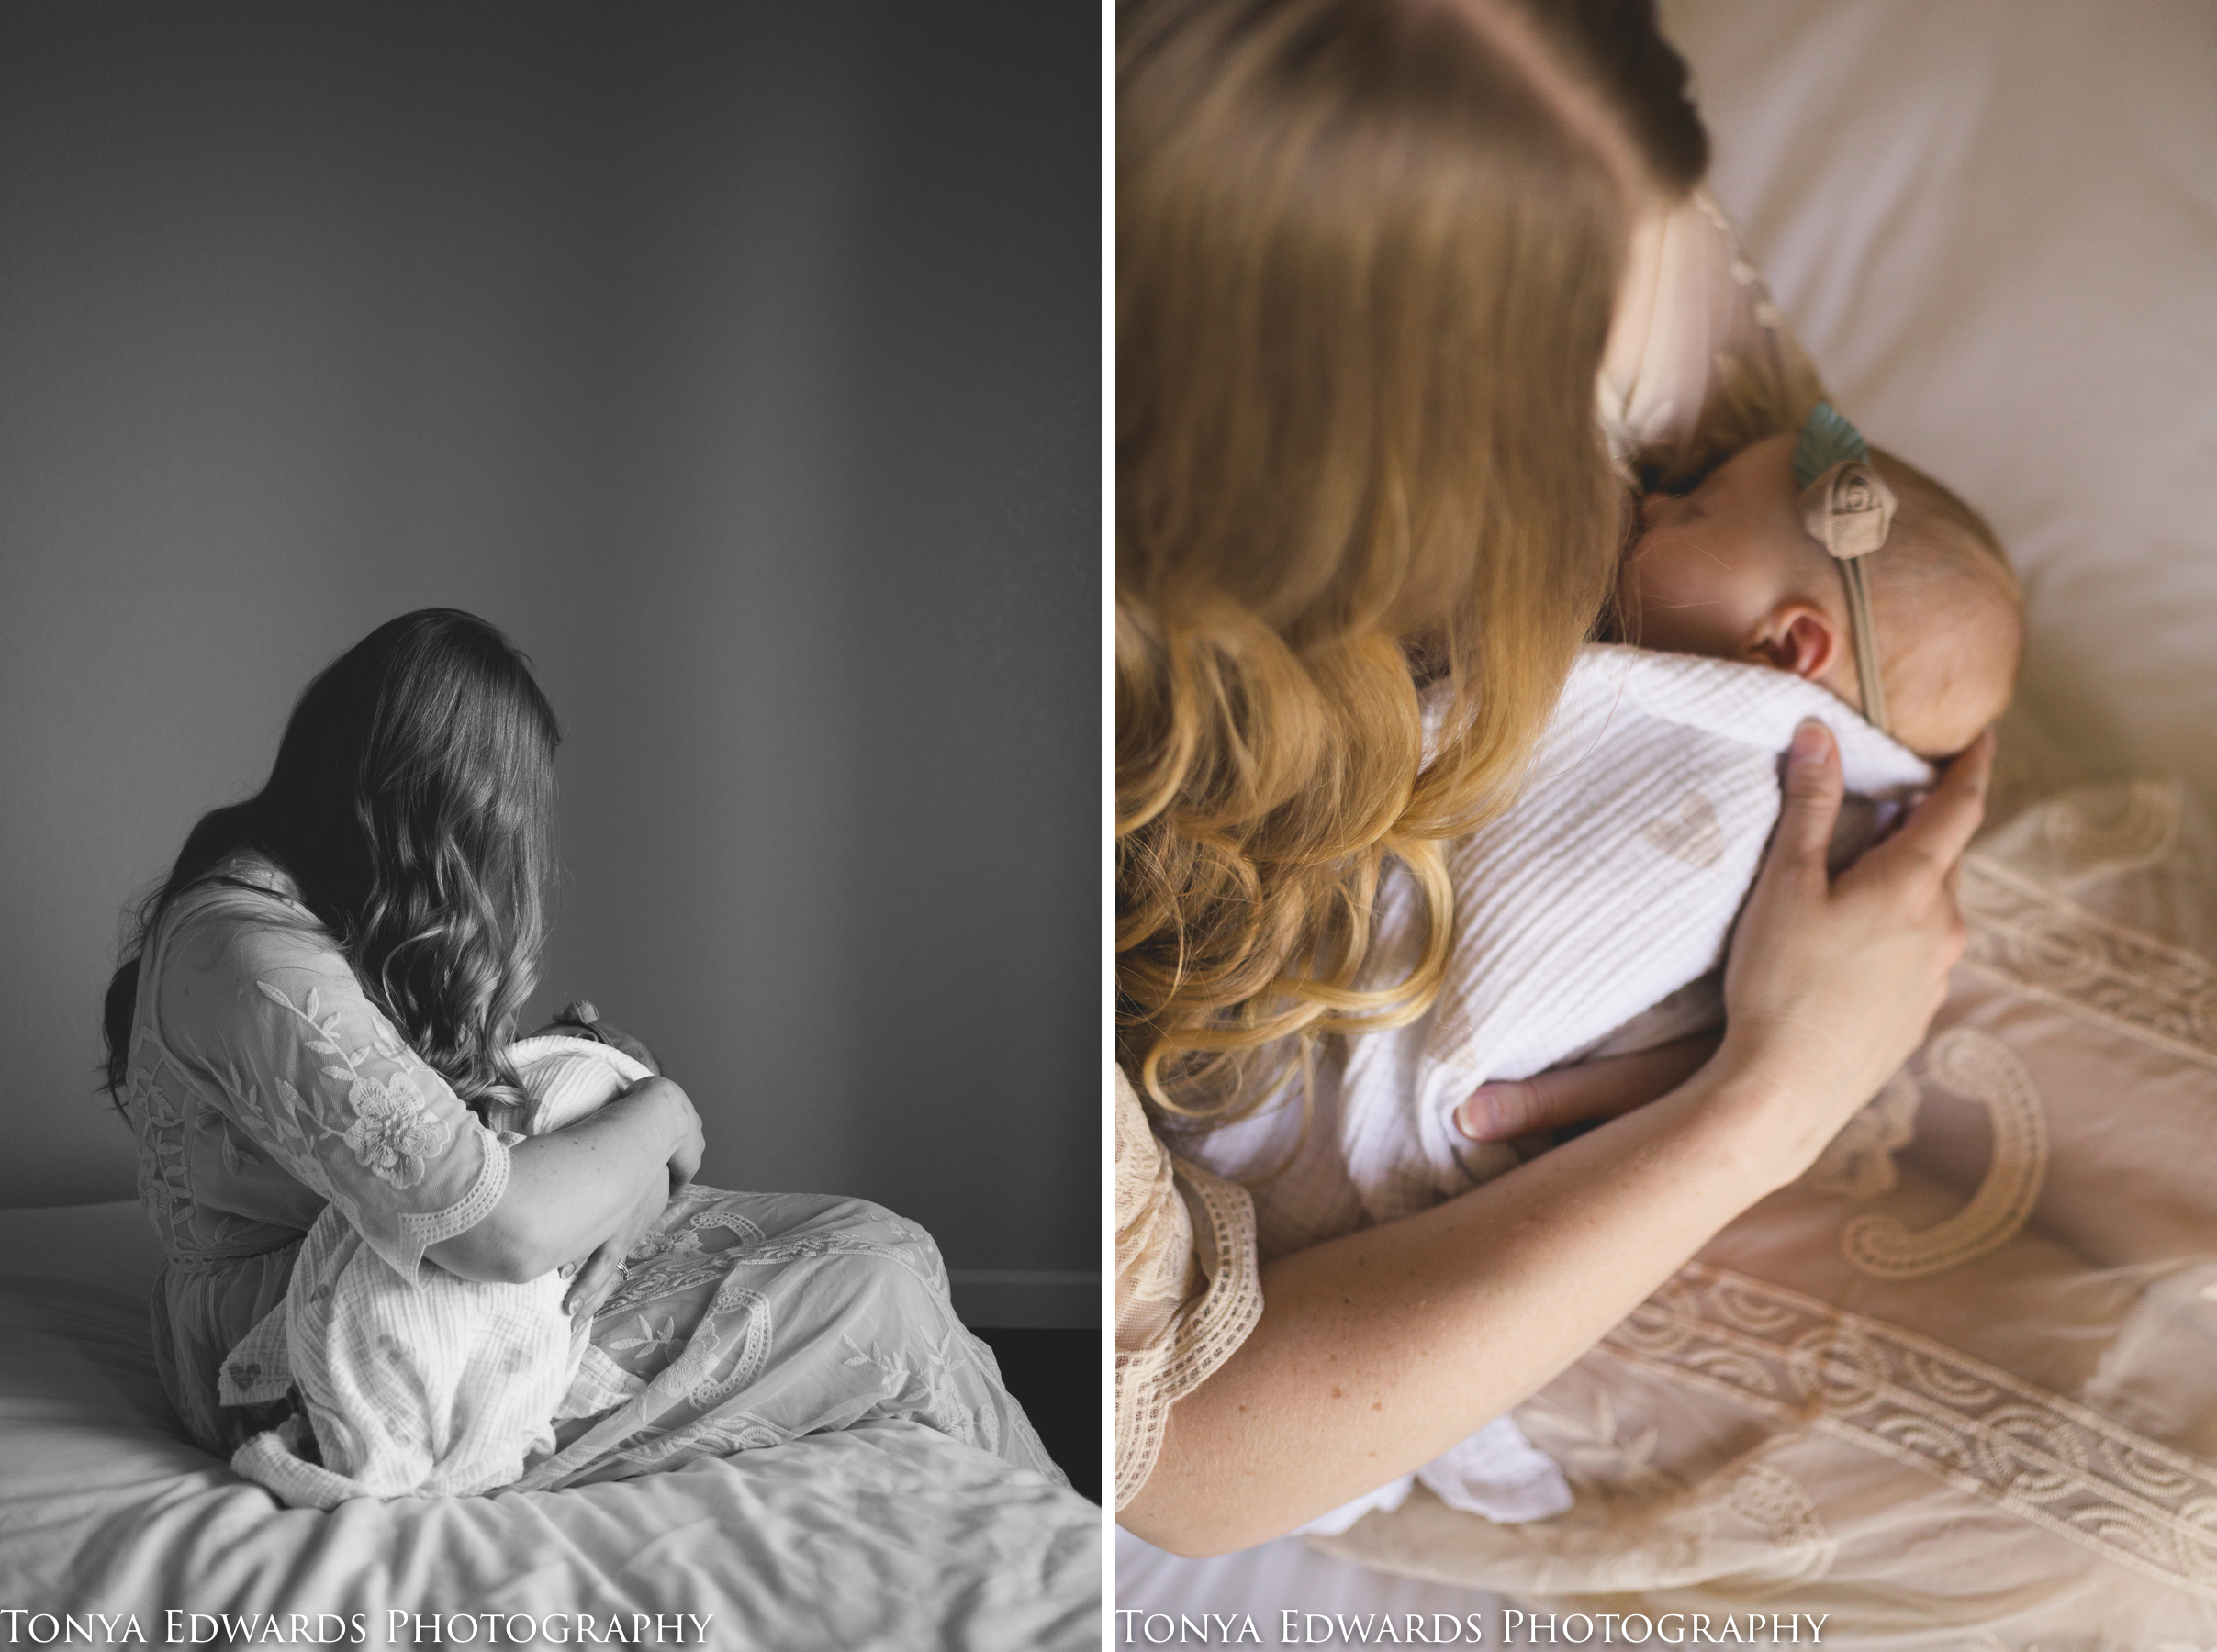 Tonya Edwards | Oroville Family Photographer | mommy and me mini session with new mother and infant baby girl breastfeeding